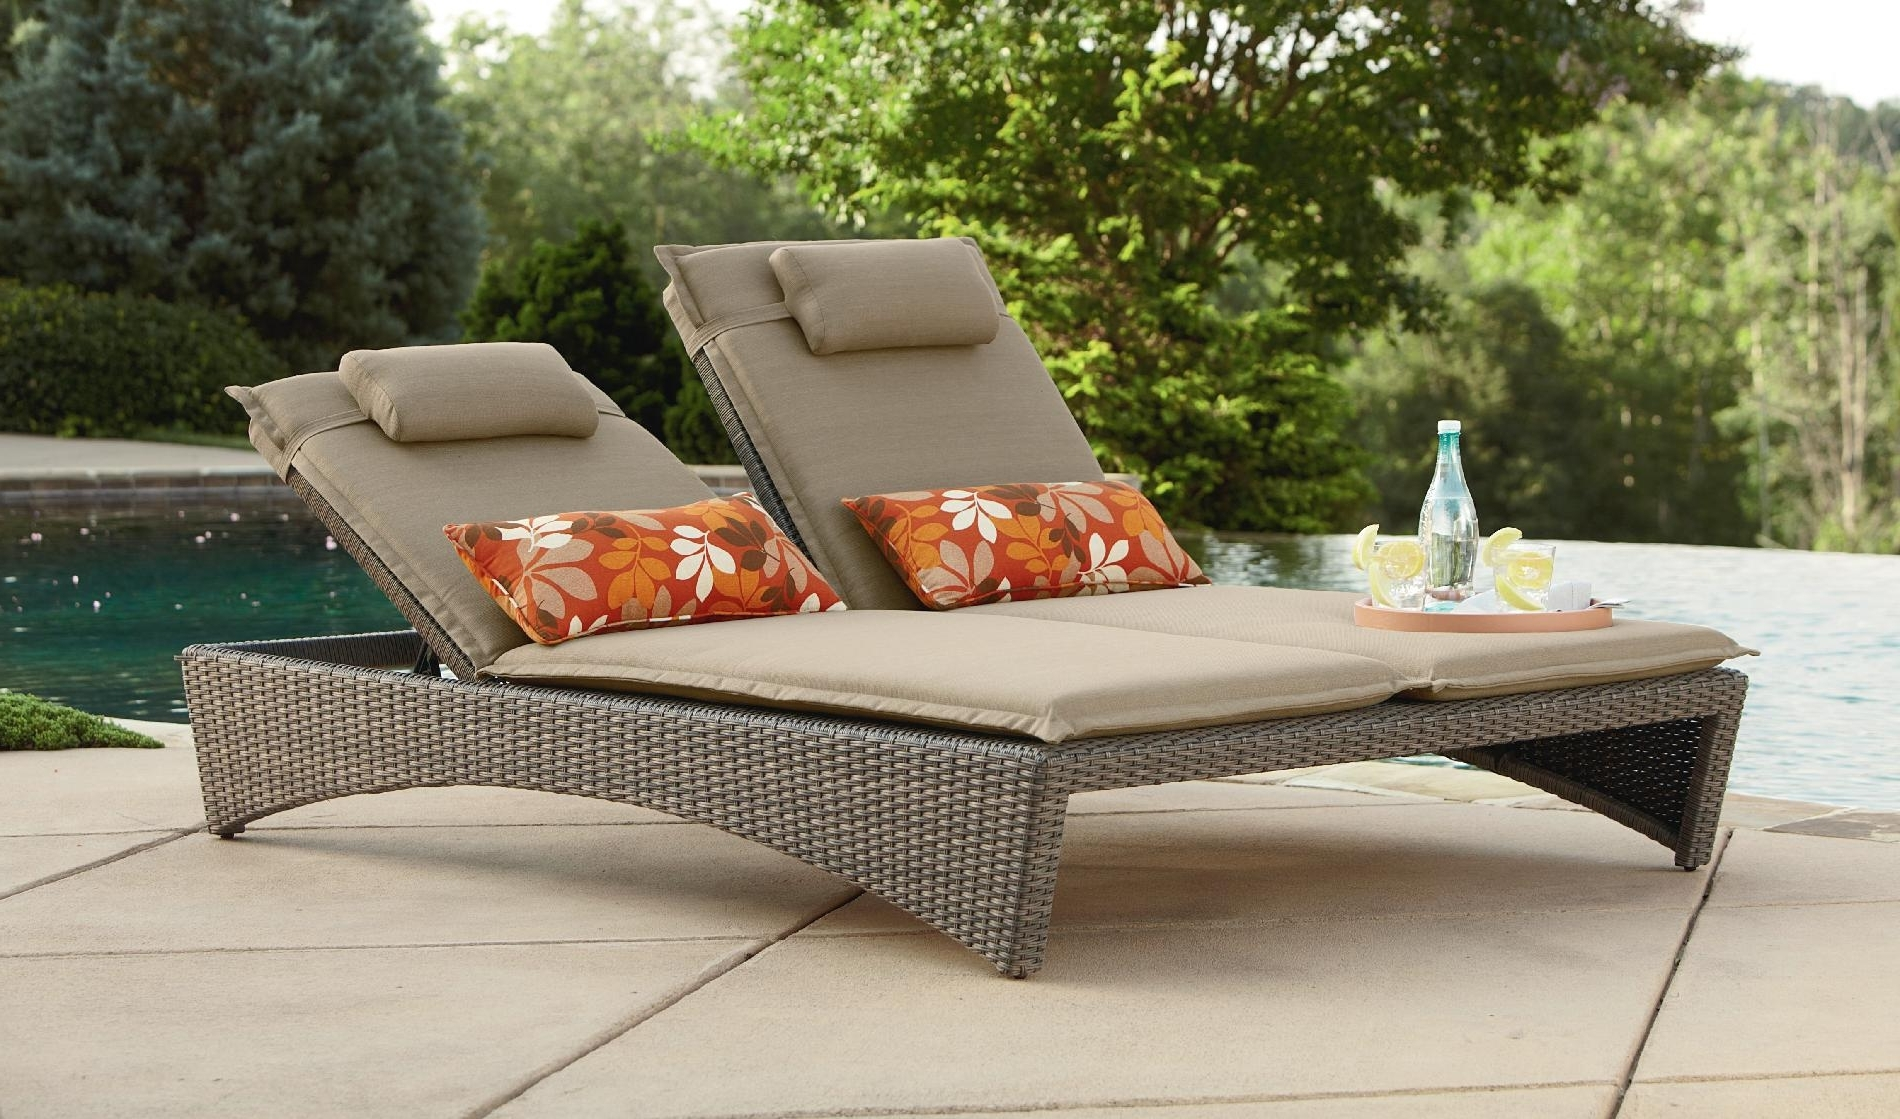 Lounge Chair : Grey Chaise Lounge Wicker Lounge Chair Chaise Regarding Most Recently Released Chaise Lounge Sets (View 6 of 15)